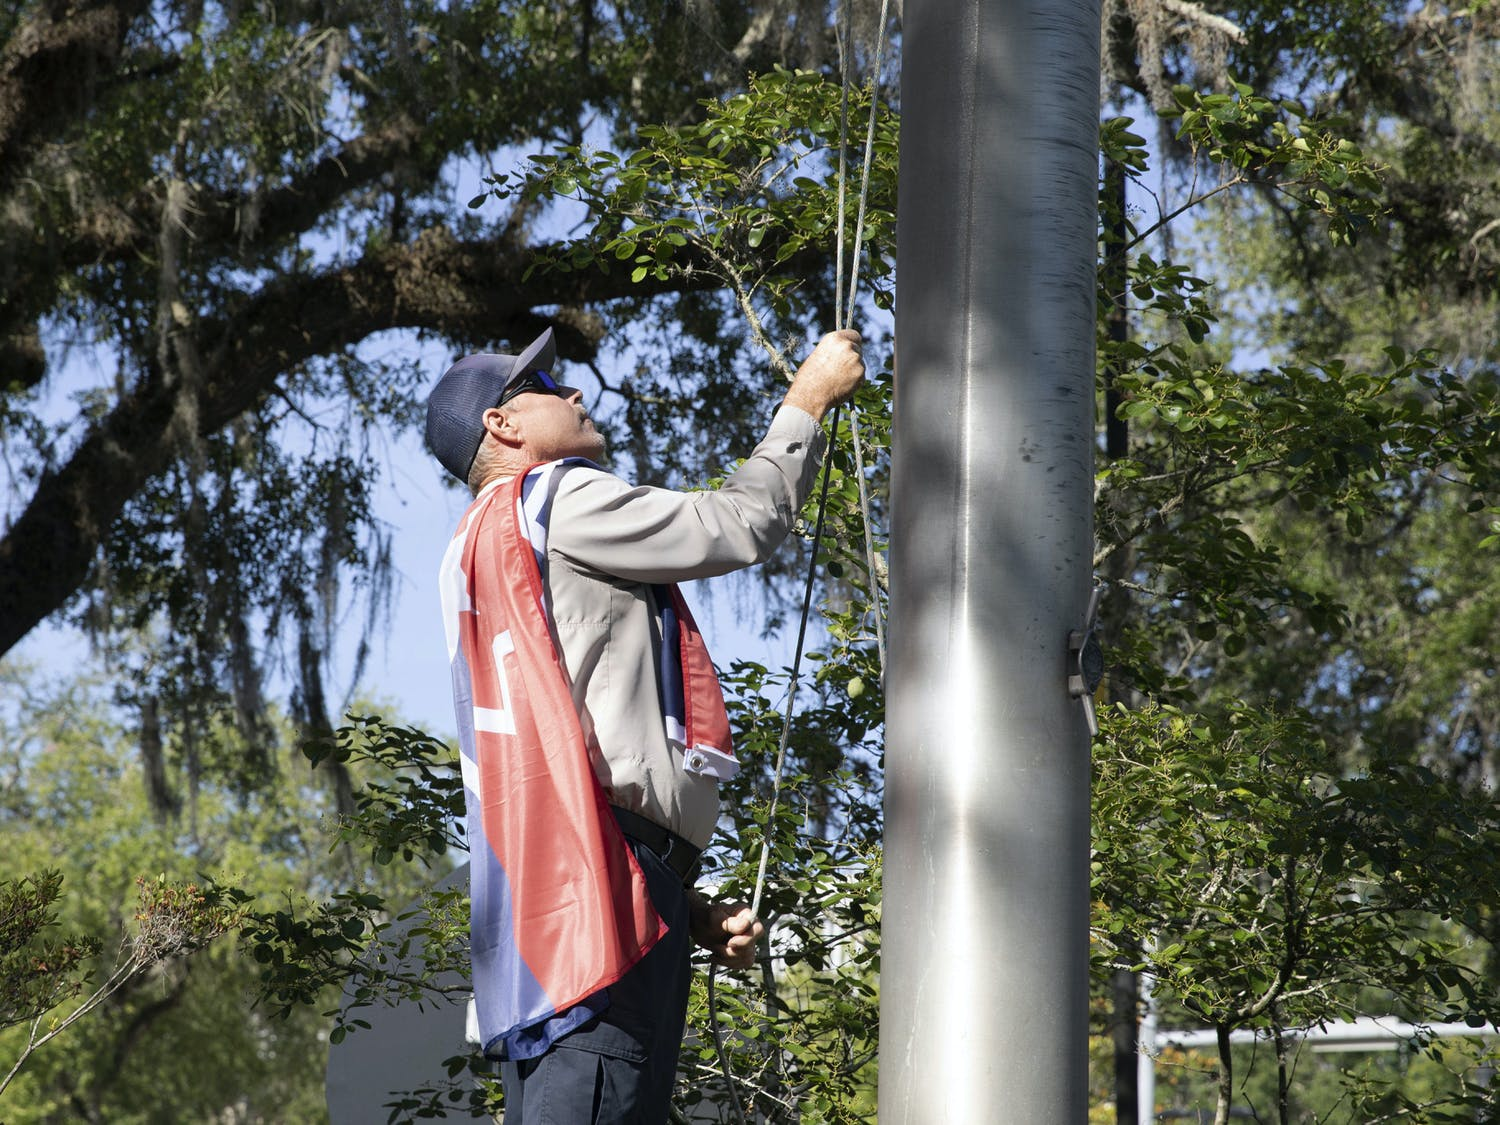 George Cannon, a supervisor of the Gainesville downtown area, raises the Juneteenth flag on Thursday, May 20, 2021.